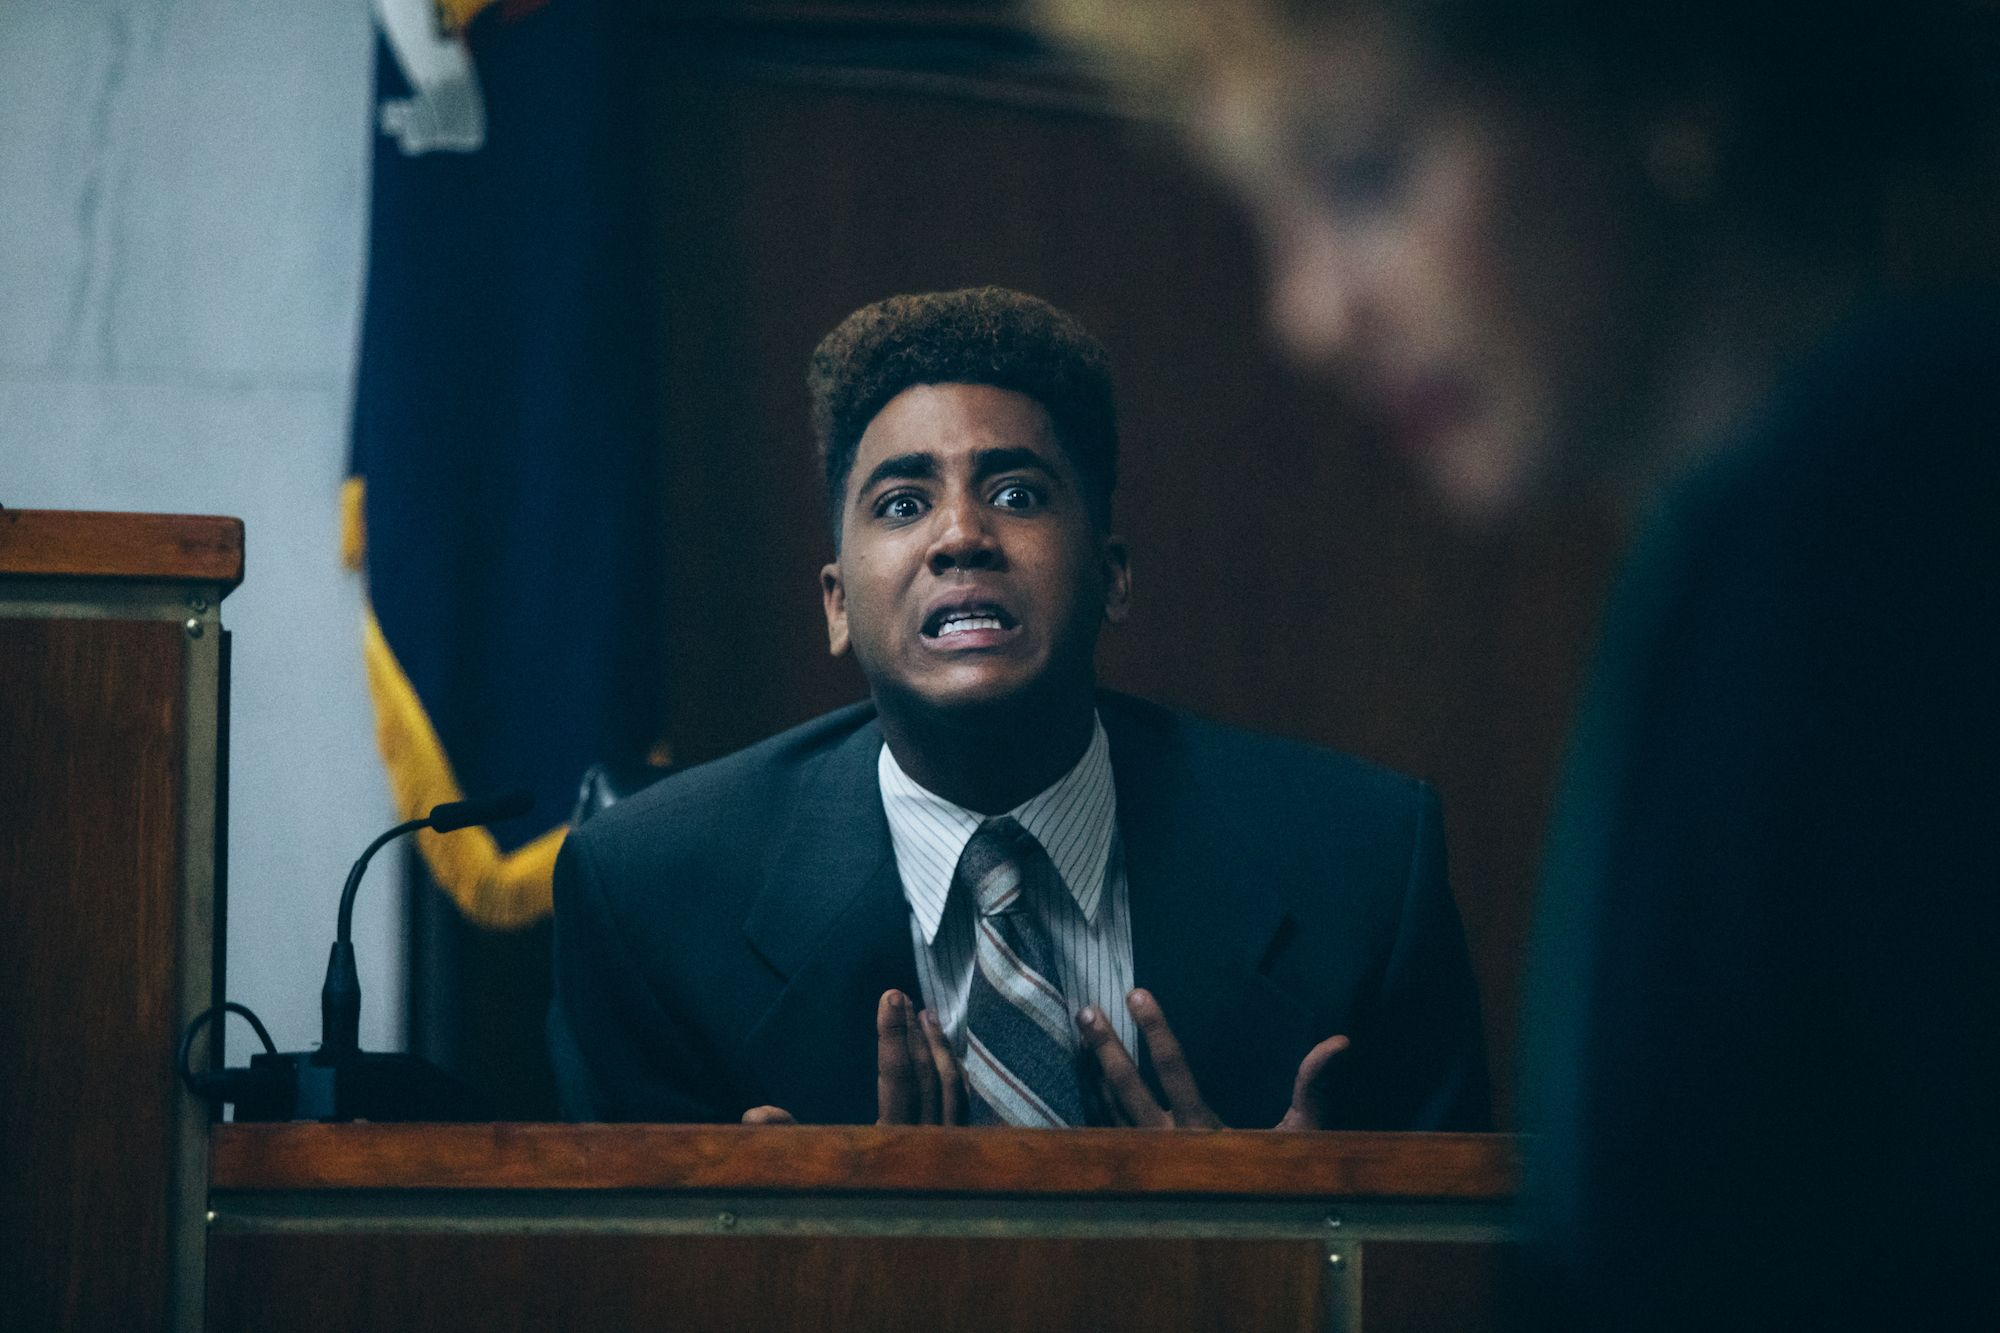 Netflix Says When They See Us Is its Most Watched Series Since its Debut